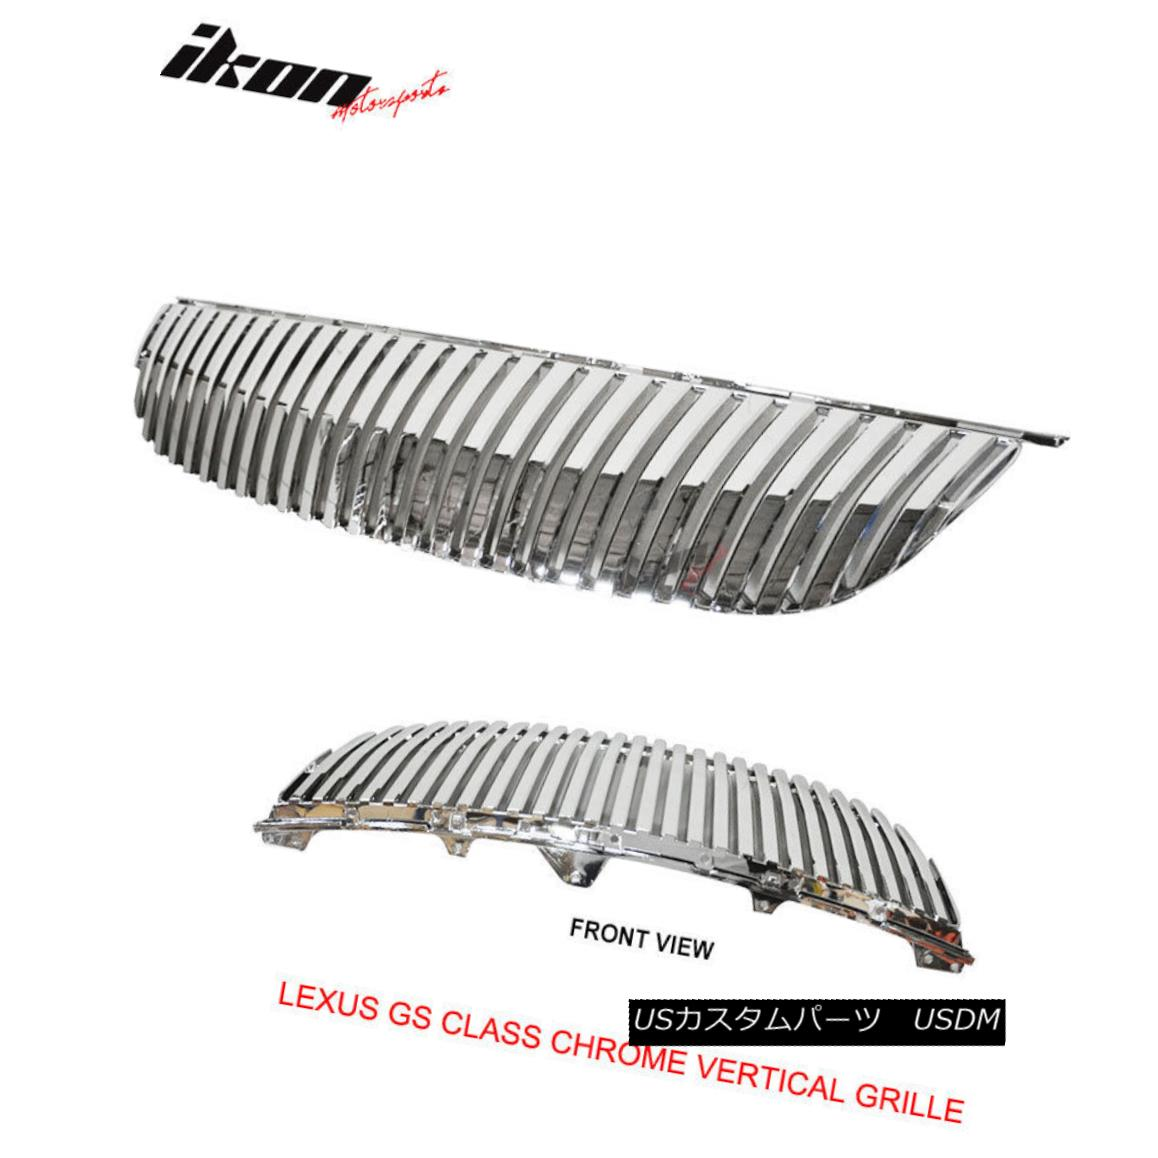 グリル For 06-07 GS430 GS350 GS300 GS450H Vertical Chrome ABS Front Hood Grille Grill 06-07用GS430 GS350 GS300 GS450H垂直クロームABSフロントフードグリルグリル